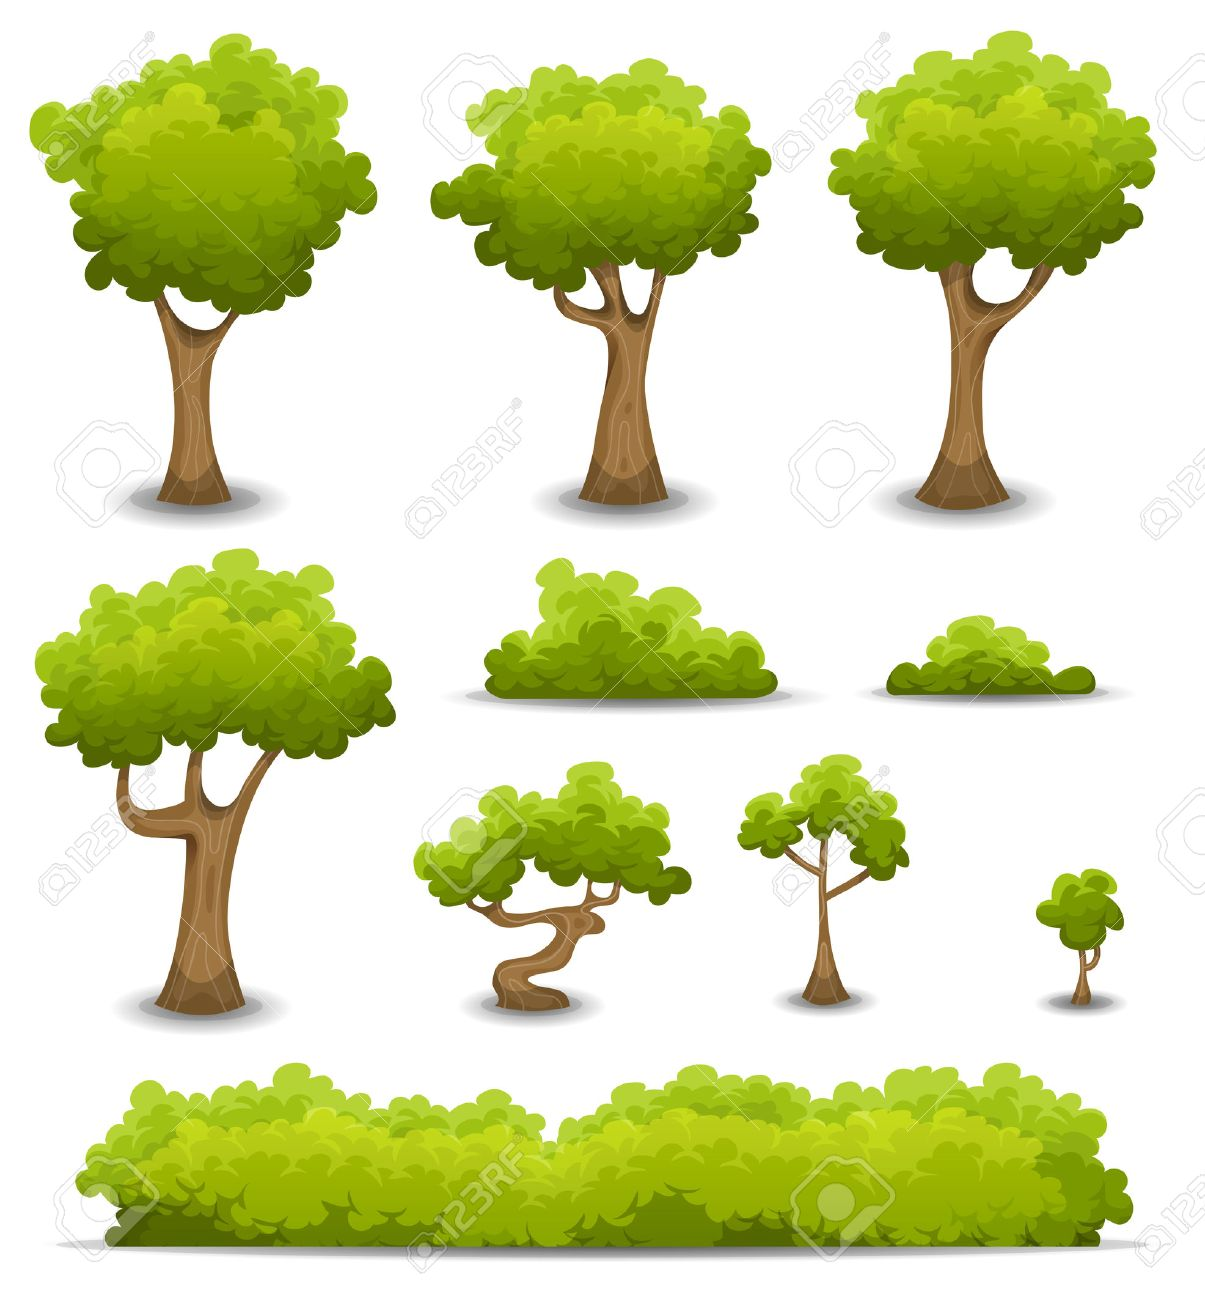 Illustration of a set of cartoon spring or summer forest trees and other green forest elements, bonsai, foliage, bush and hedges - 51362537